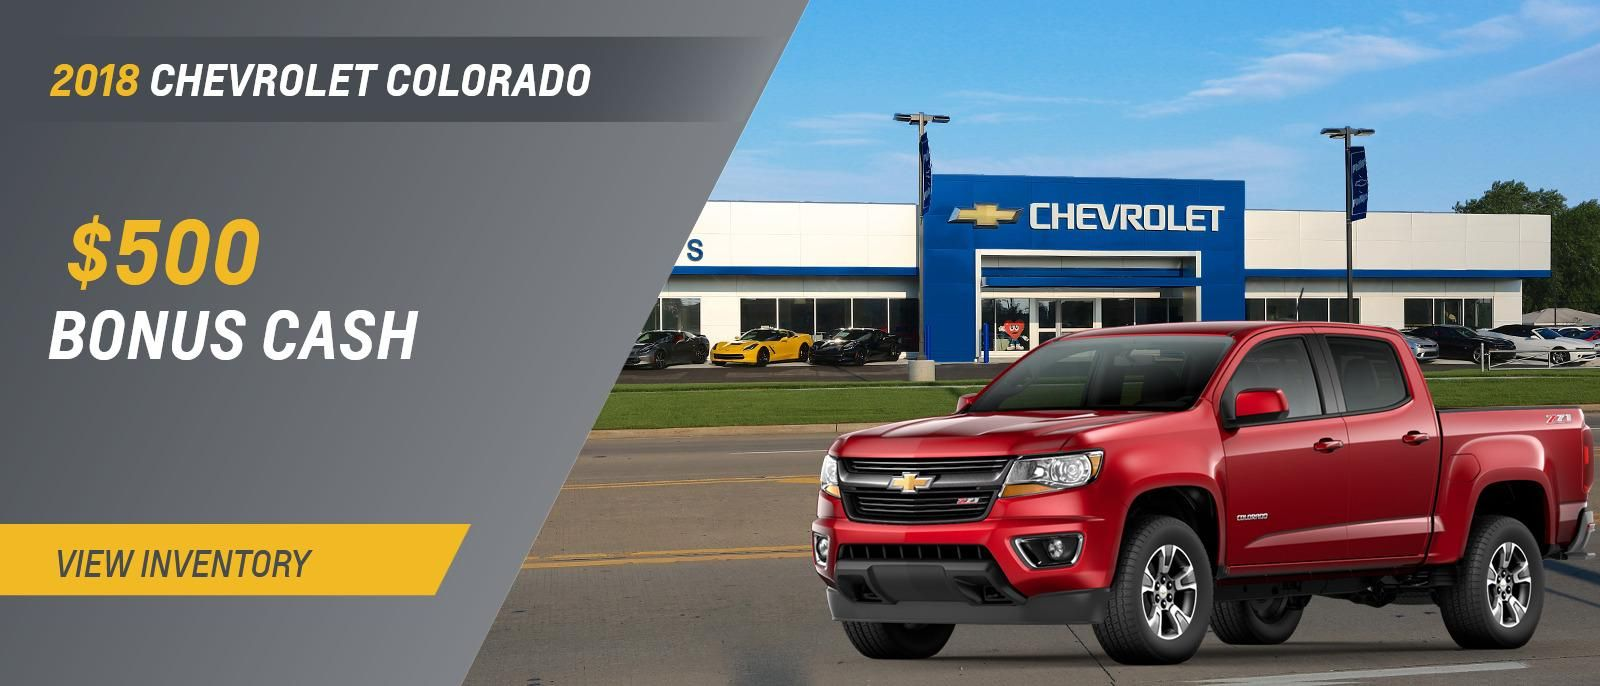 2018 Chevy Bonus Silverado 1500 Deals Offers Specials